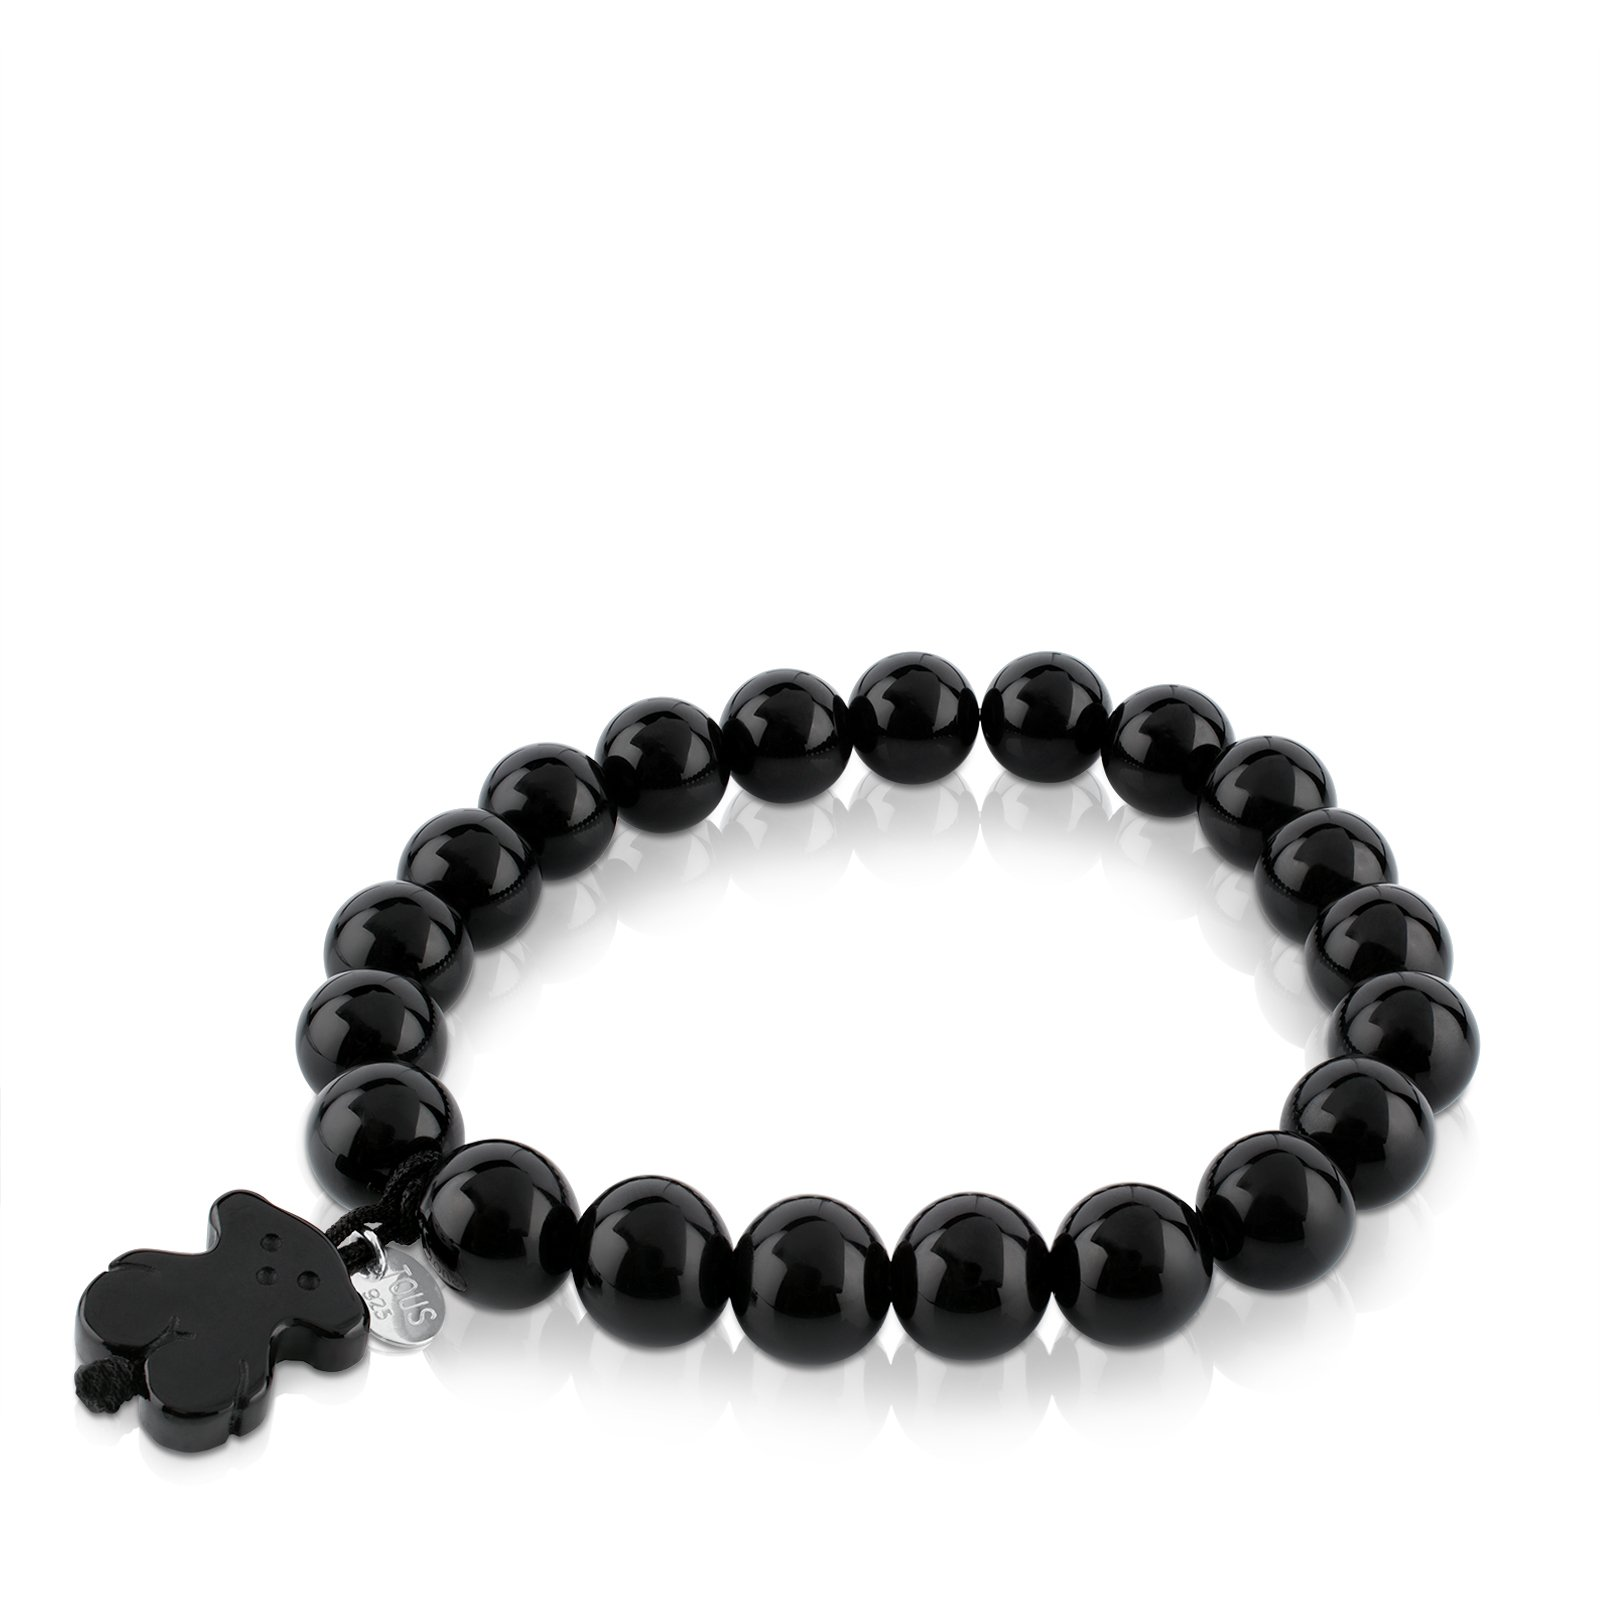 TOUS Jewelry ''Icon Black and White'' Agate with Bear Black Stretch Bracelet